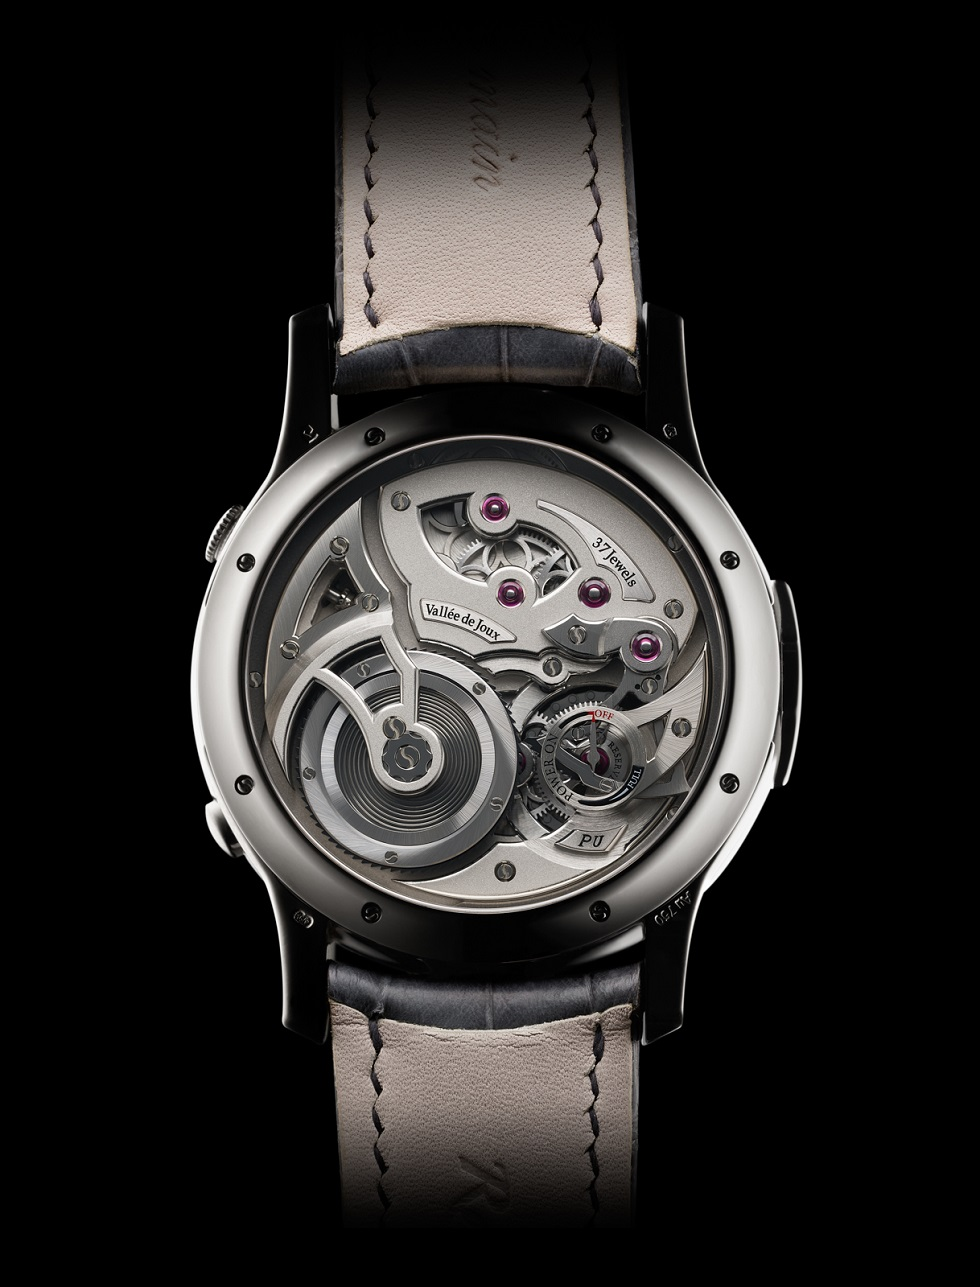 6_Romain_Gauthier_Logical_one_Secret_Kakau_Hofke_MON000168_display_back_low_resolution